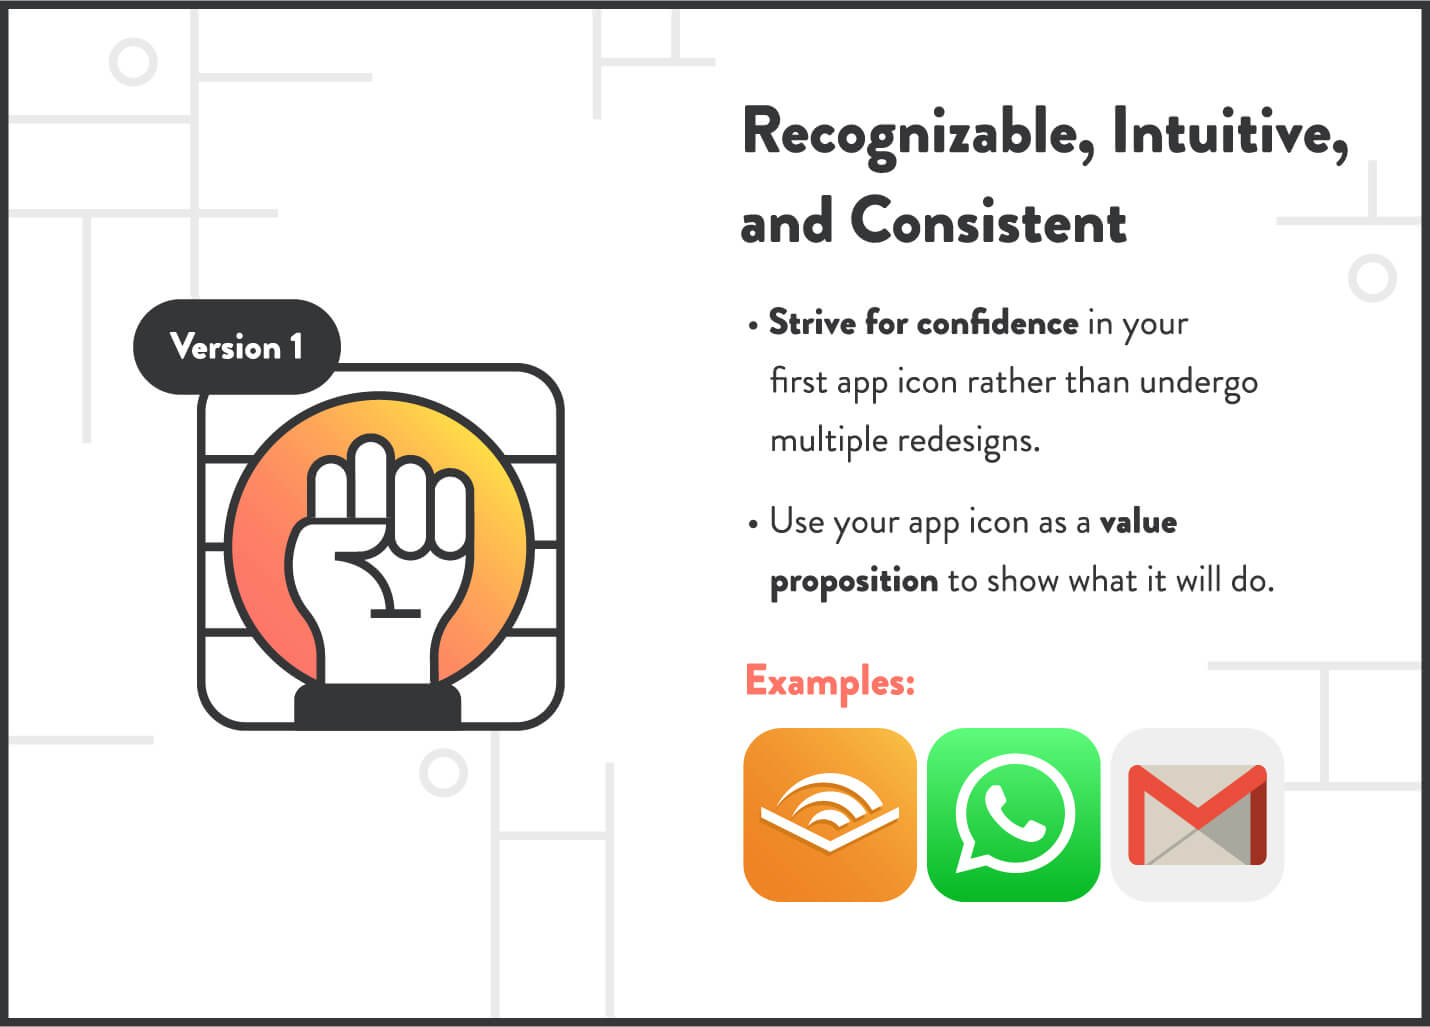 make app icons recognizable, intuitive, and consistent using examples from audible, whatsapp, and gmail